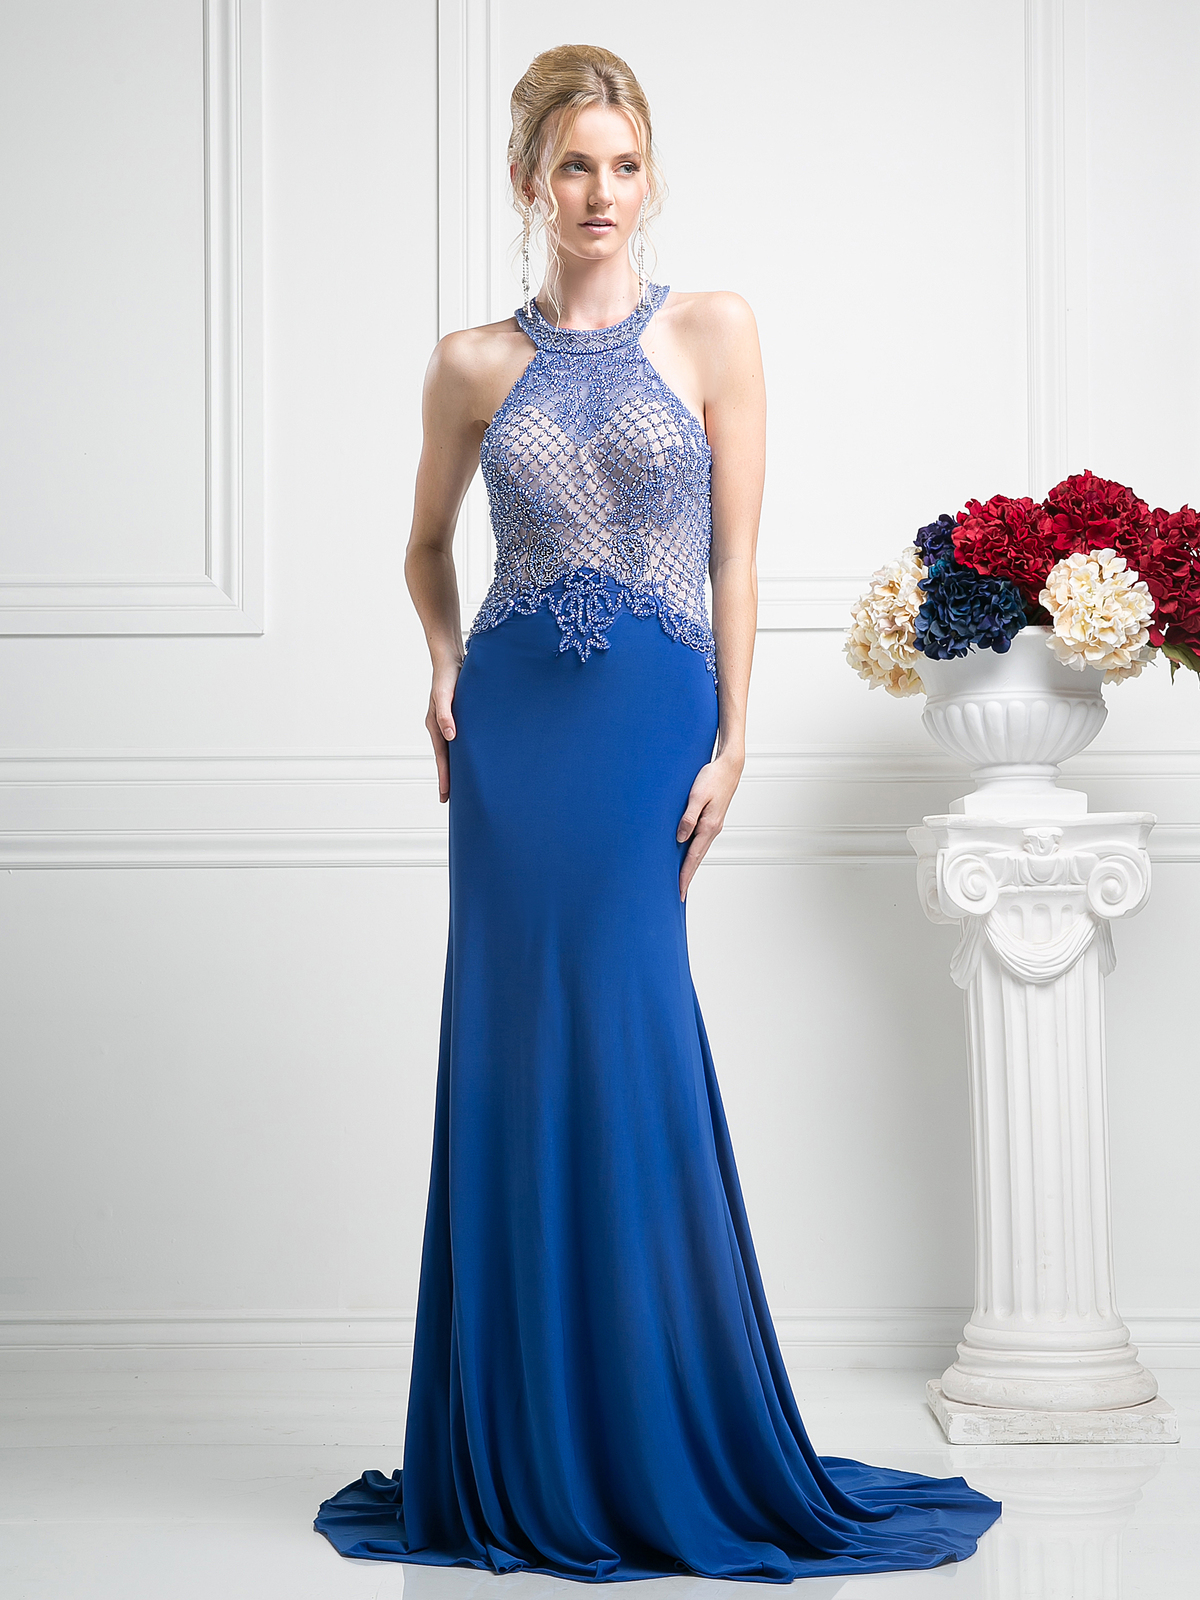 Halter Beaded Top Backless Gown with Train   Sung Boutique L.A.